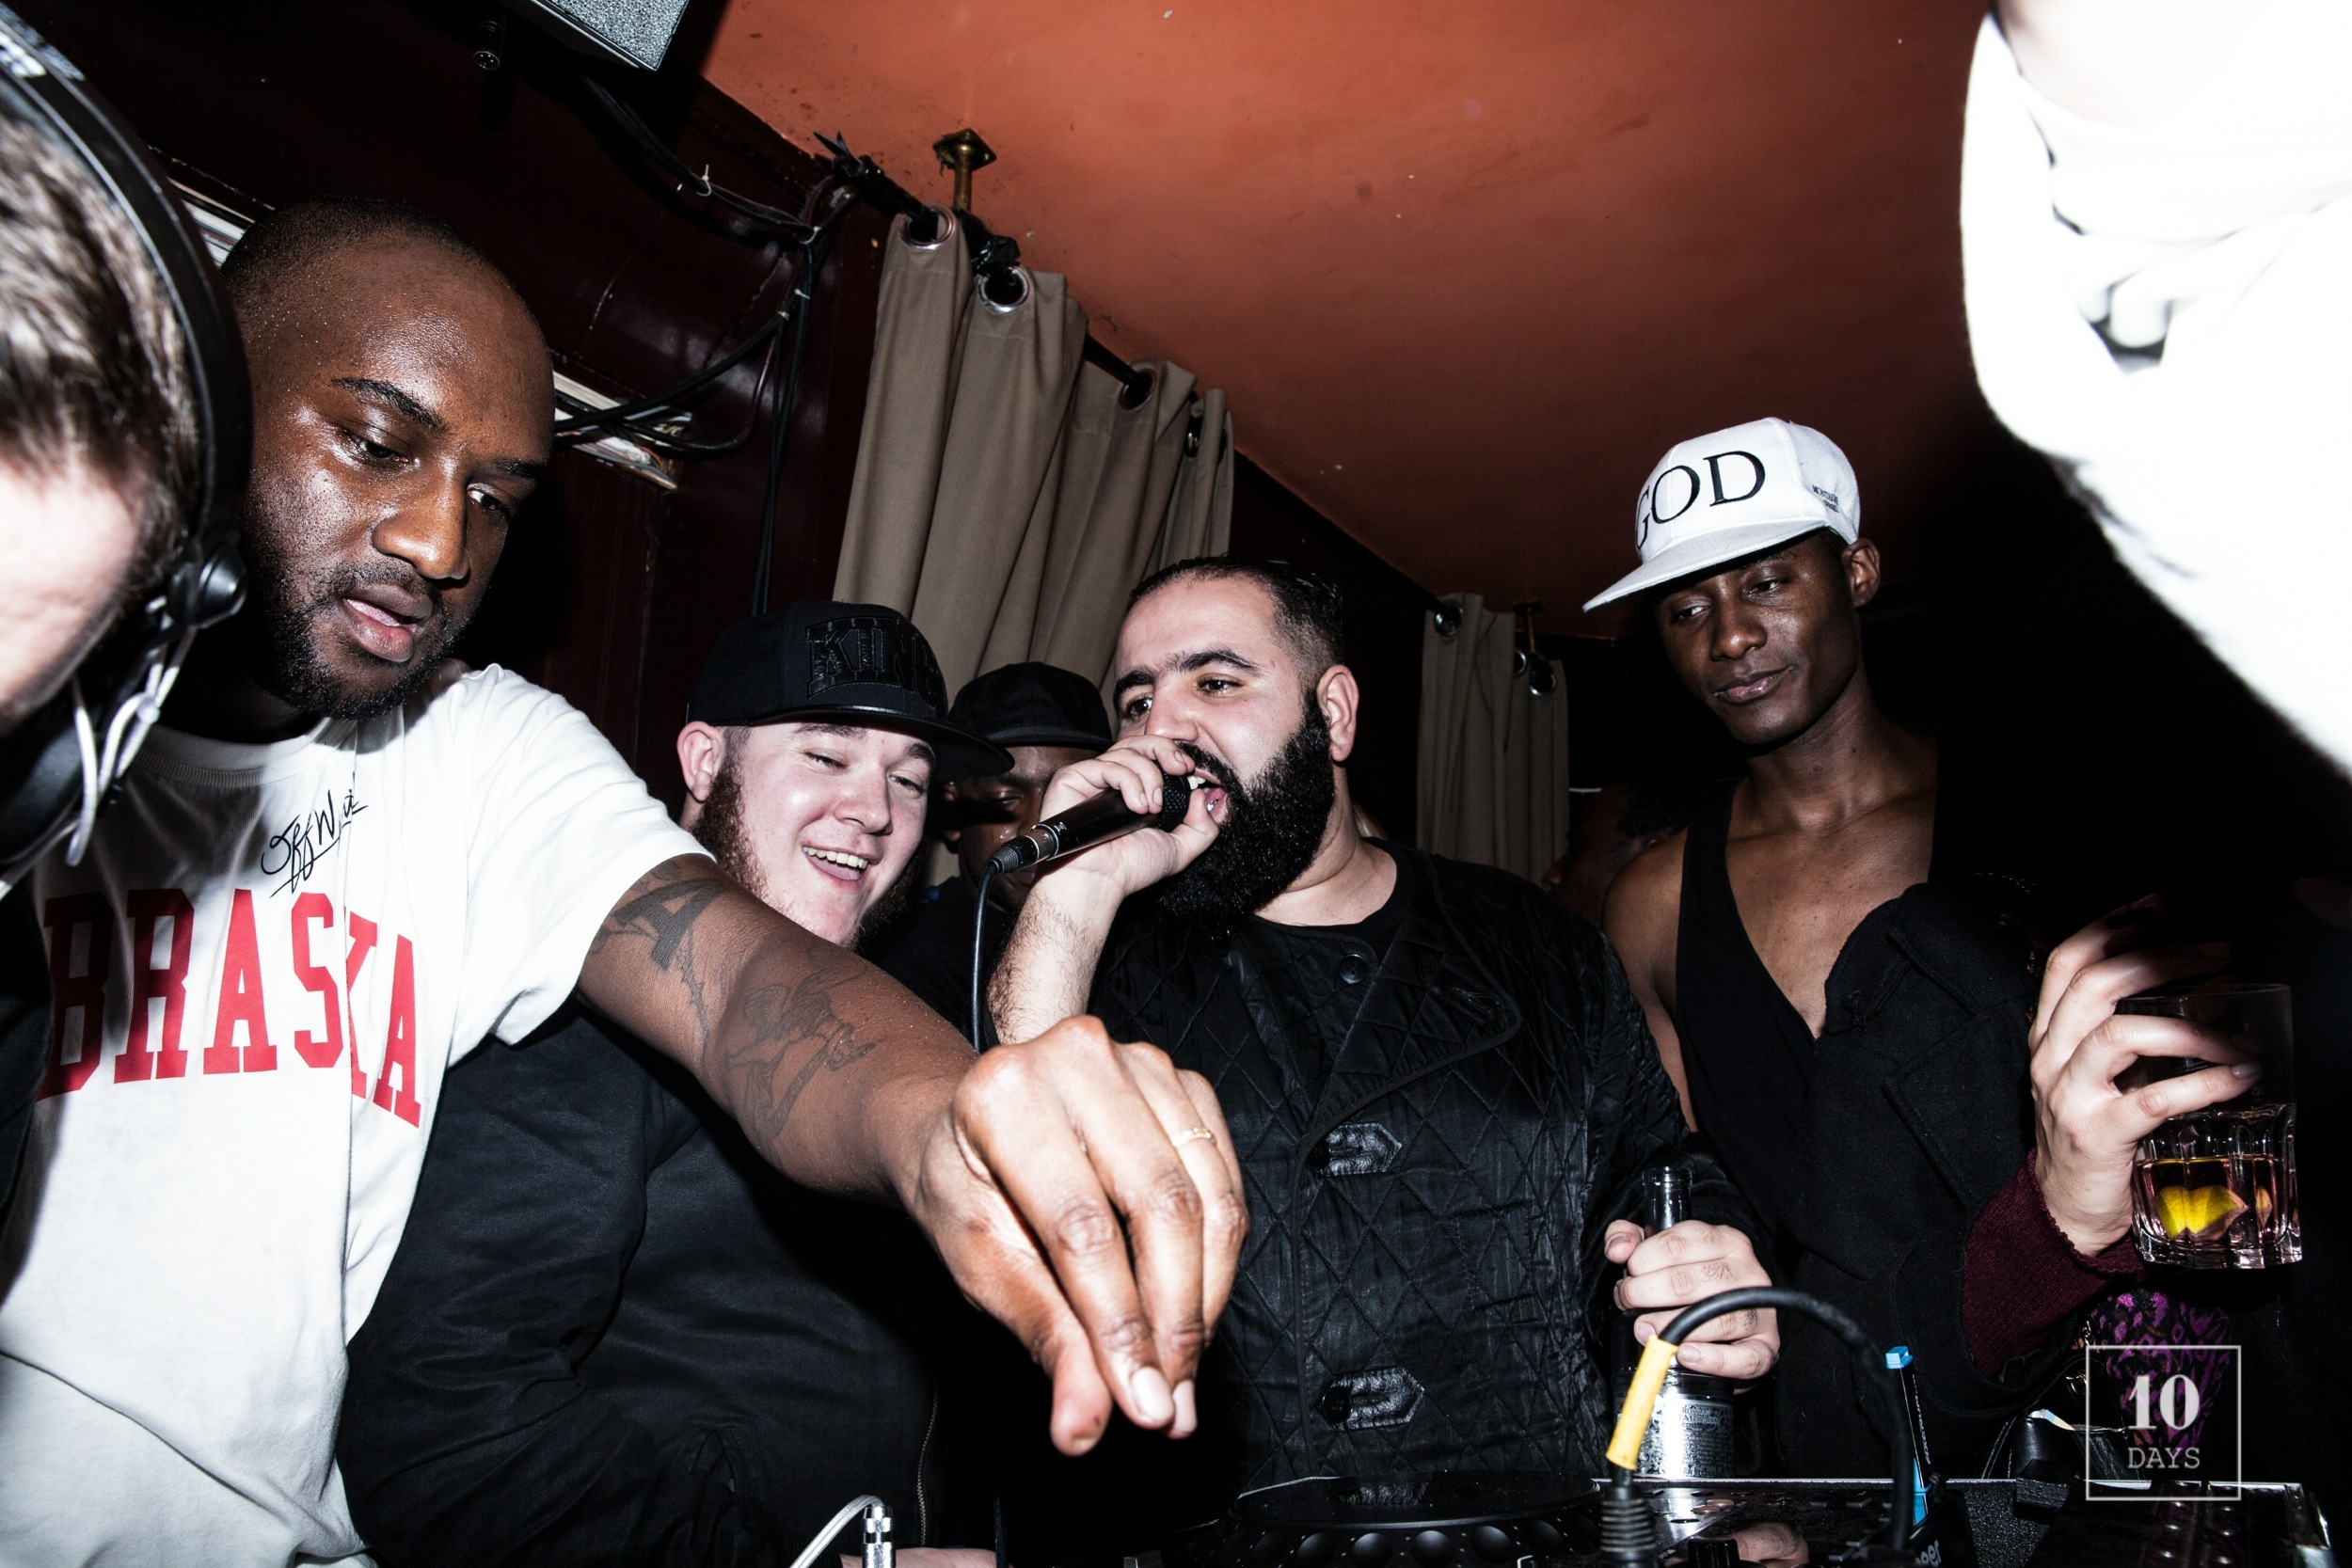 [ARCHIVES JANV. 15] PIGALLE AFTERSHOW PARTY AT CARMEN